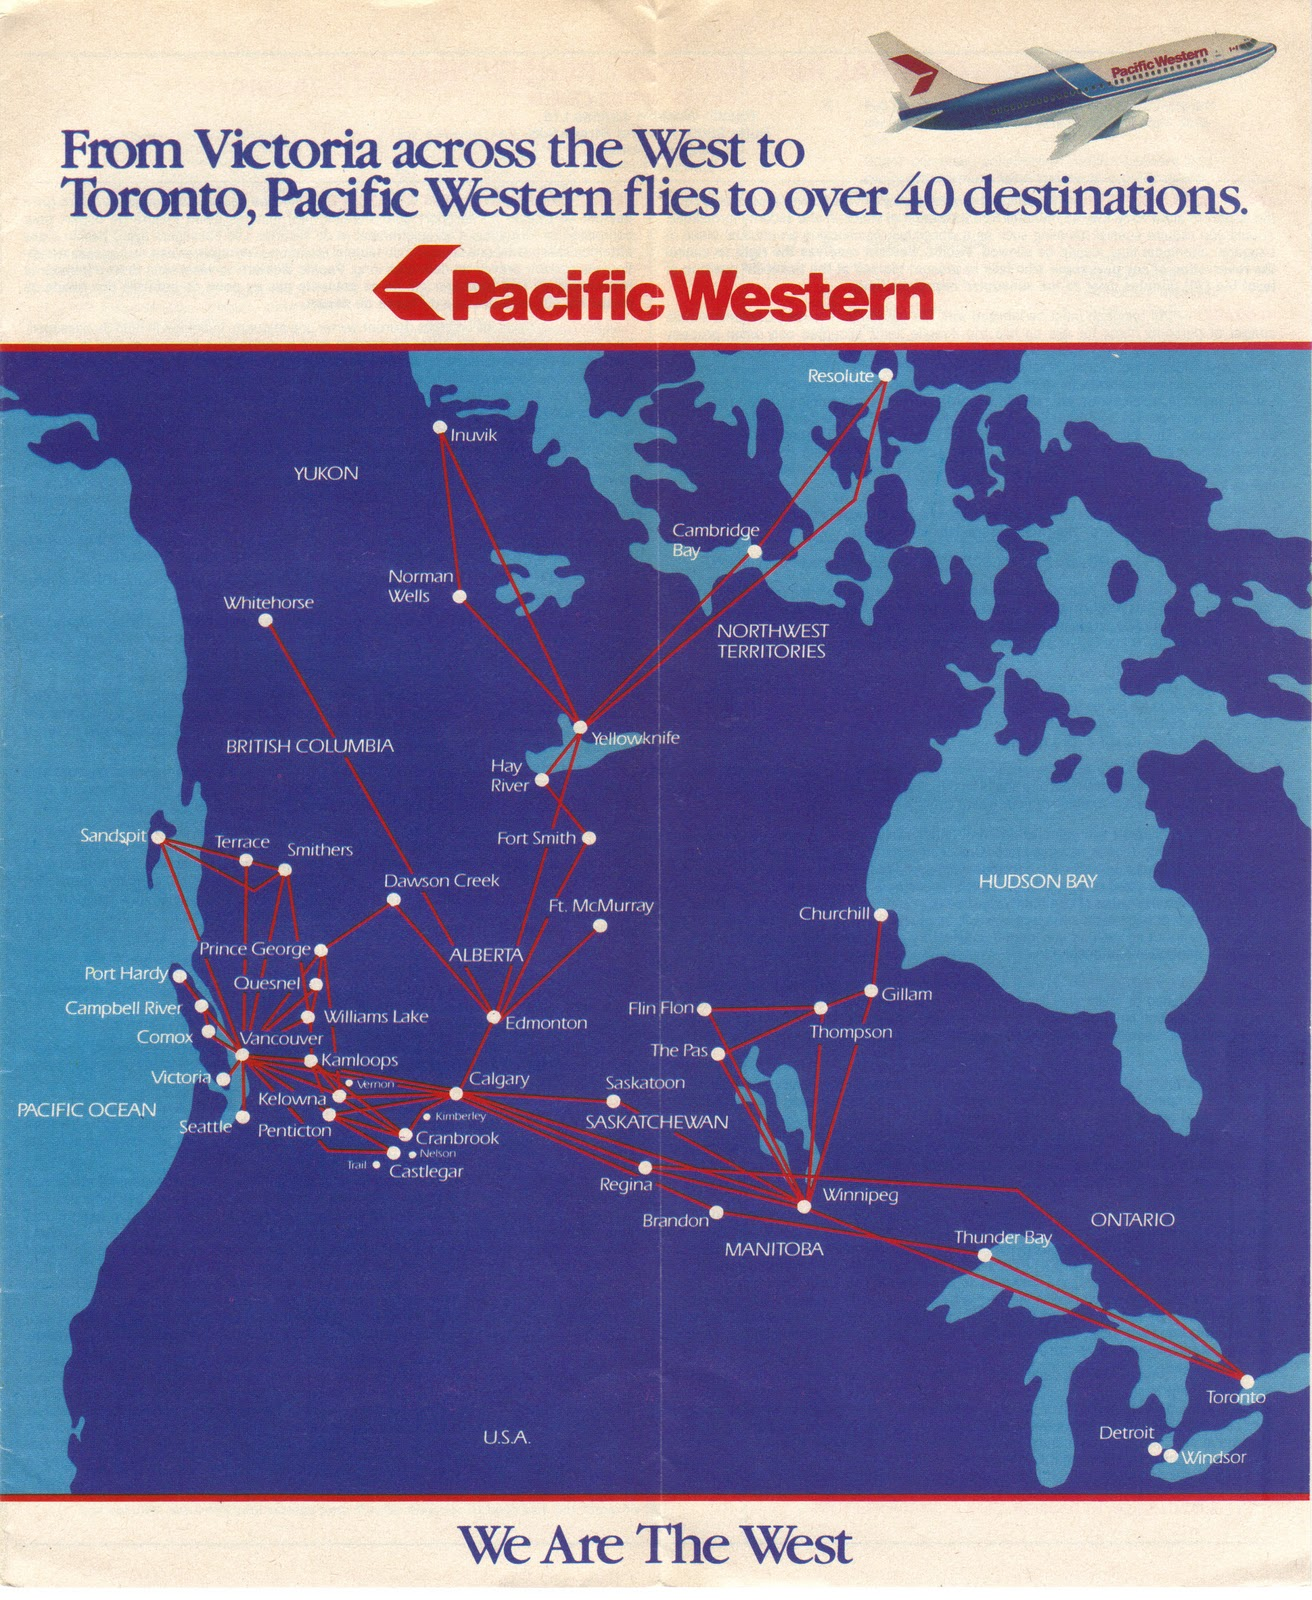 PWA+Route+Map+Sep+85 Airline Route Map Western Canada on northwest airlines route map, alitalia airlines route map, independence air route map, solomon airlines route map, hughes airwest route map, jackson airlines route map, wright airlines route map, twa route map, american airlines route map, alaska airlines route map, empire airlines route map, rocky mountain airways route map, air florida route map, united airlines route map, atlantic coast airlines route map, continental airlines route map, saudi arabian airlines route map, eastern airlines route map, golden west airlines route map,